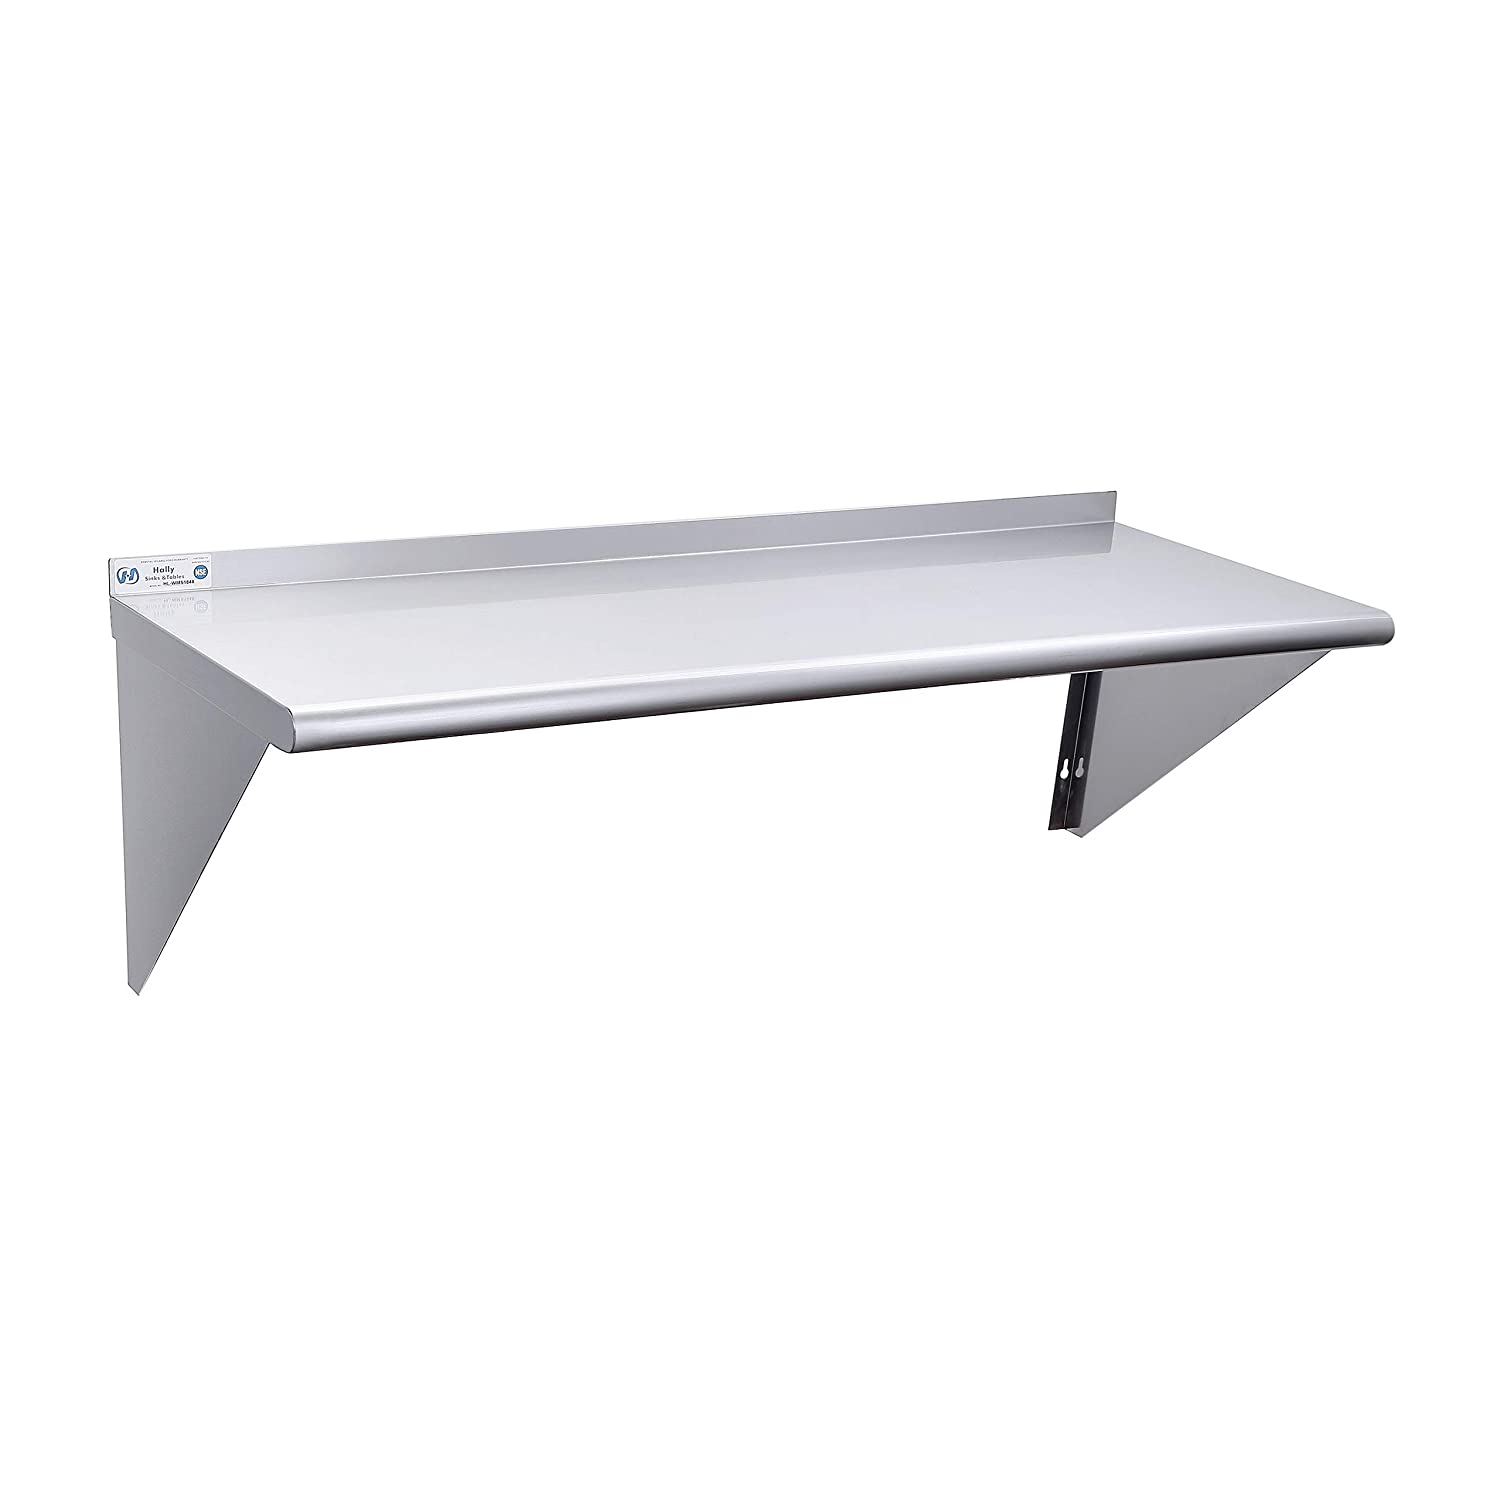 Stainless Steel Shelf 18 x 48 Inches, 400 lb, Commercial NSF Wall Mount Floating Shelving for Restaurant, Kitchen, Home and Hotel